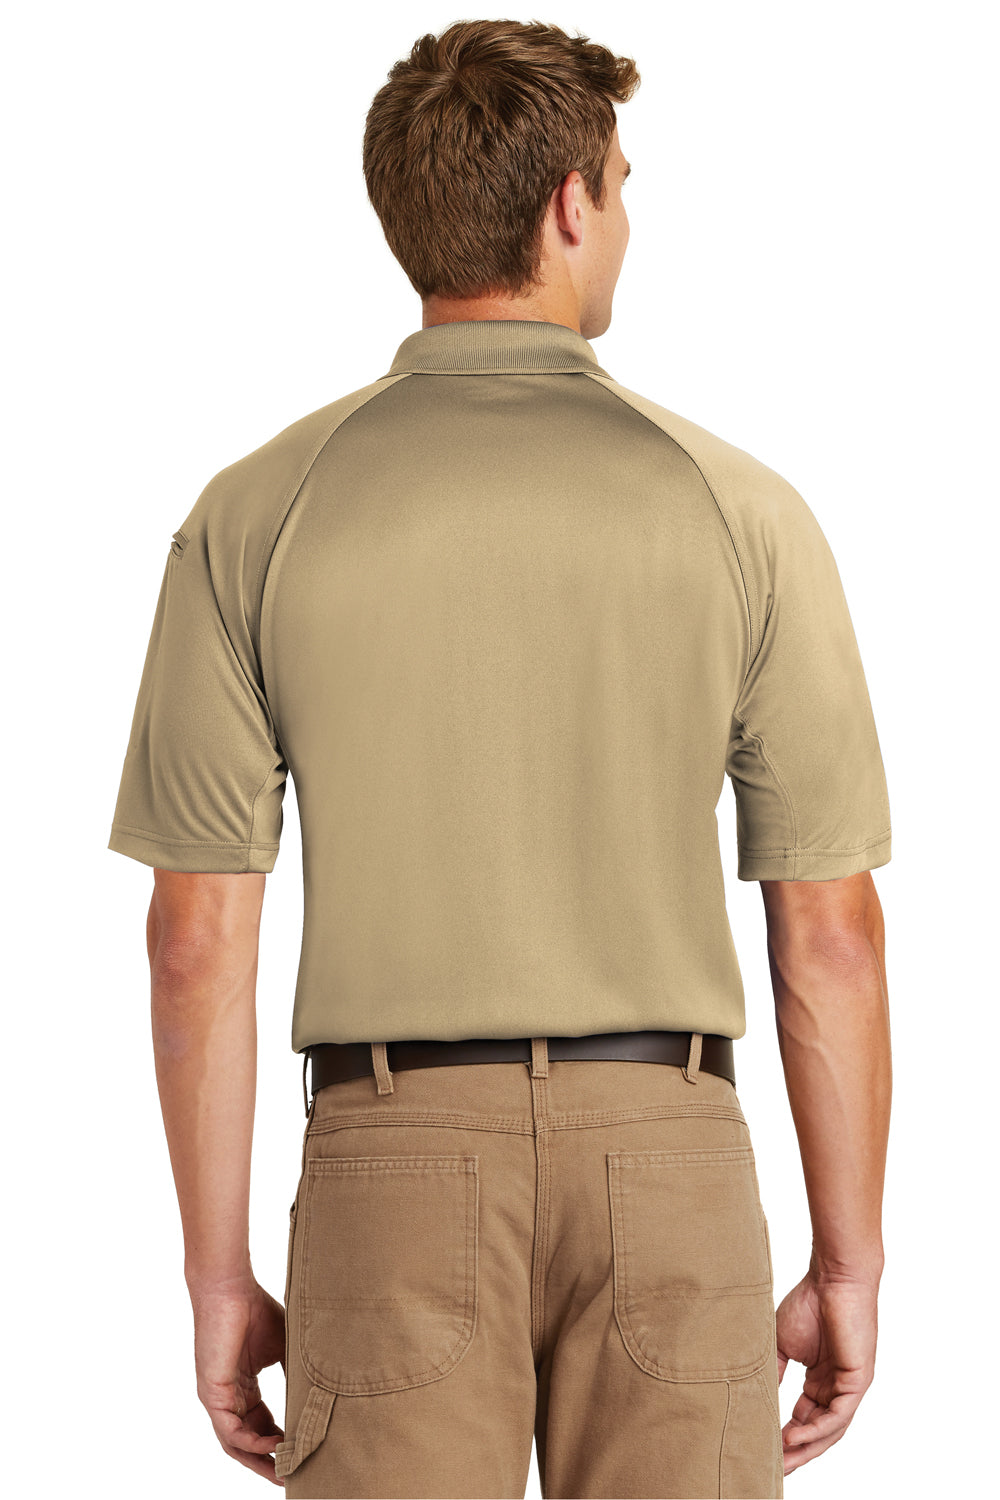 CornerStone CS410 Mens Select Tactical Moisture Wicking Short Sleeve Polo Shirt Tan Brown Back